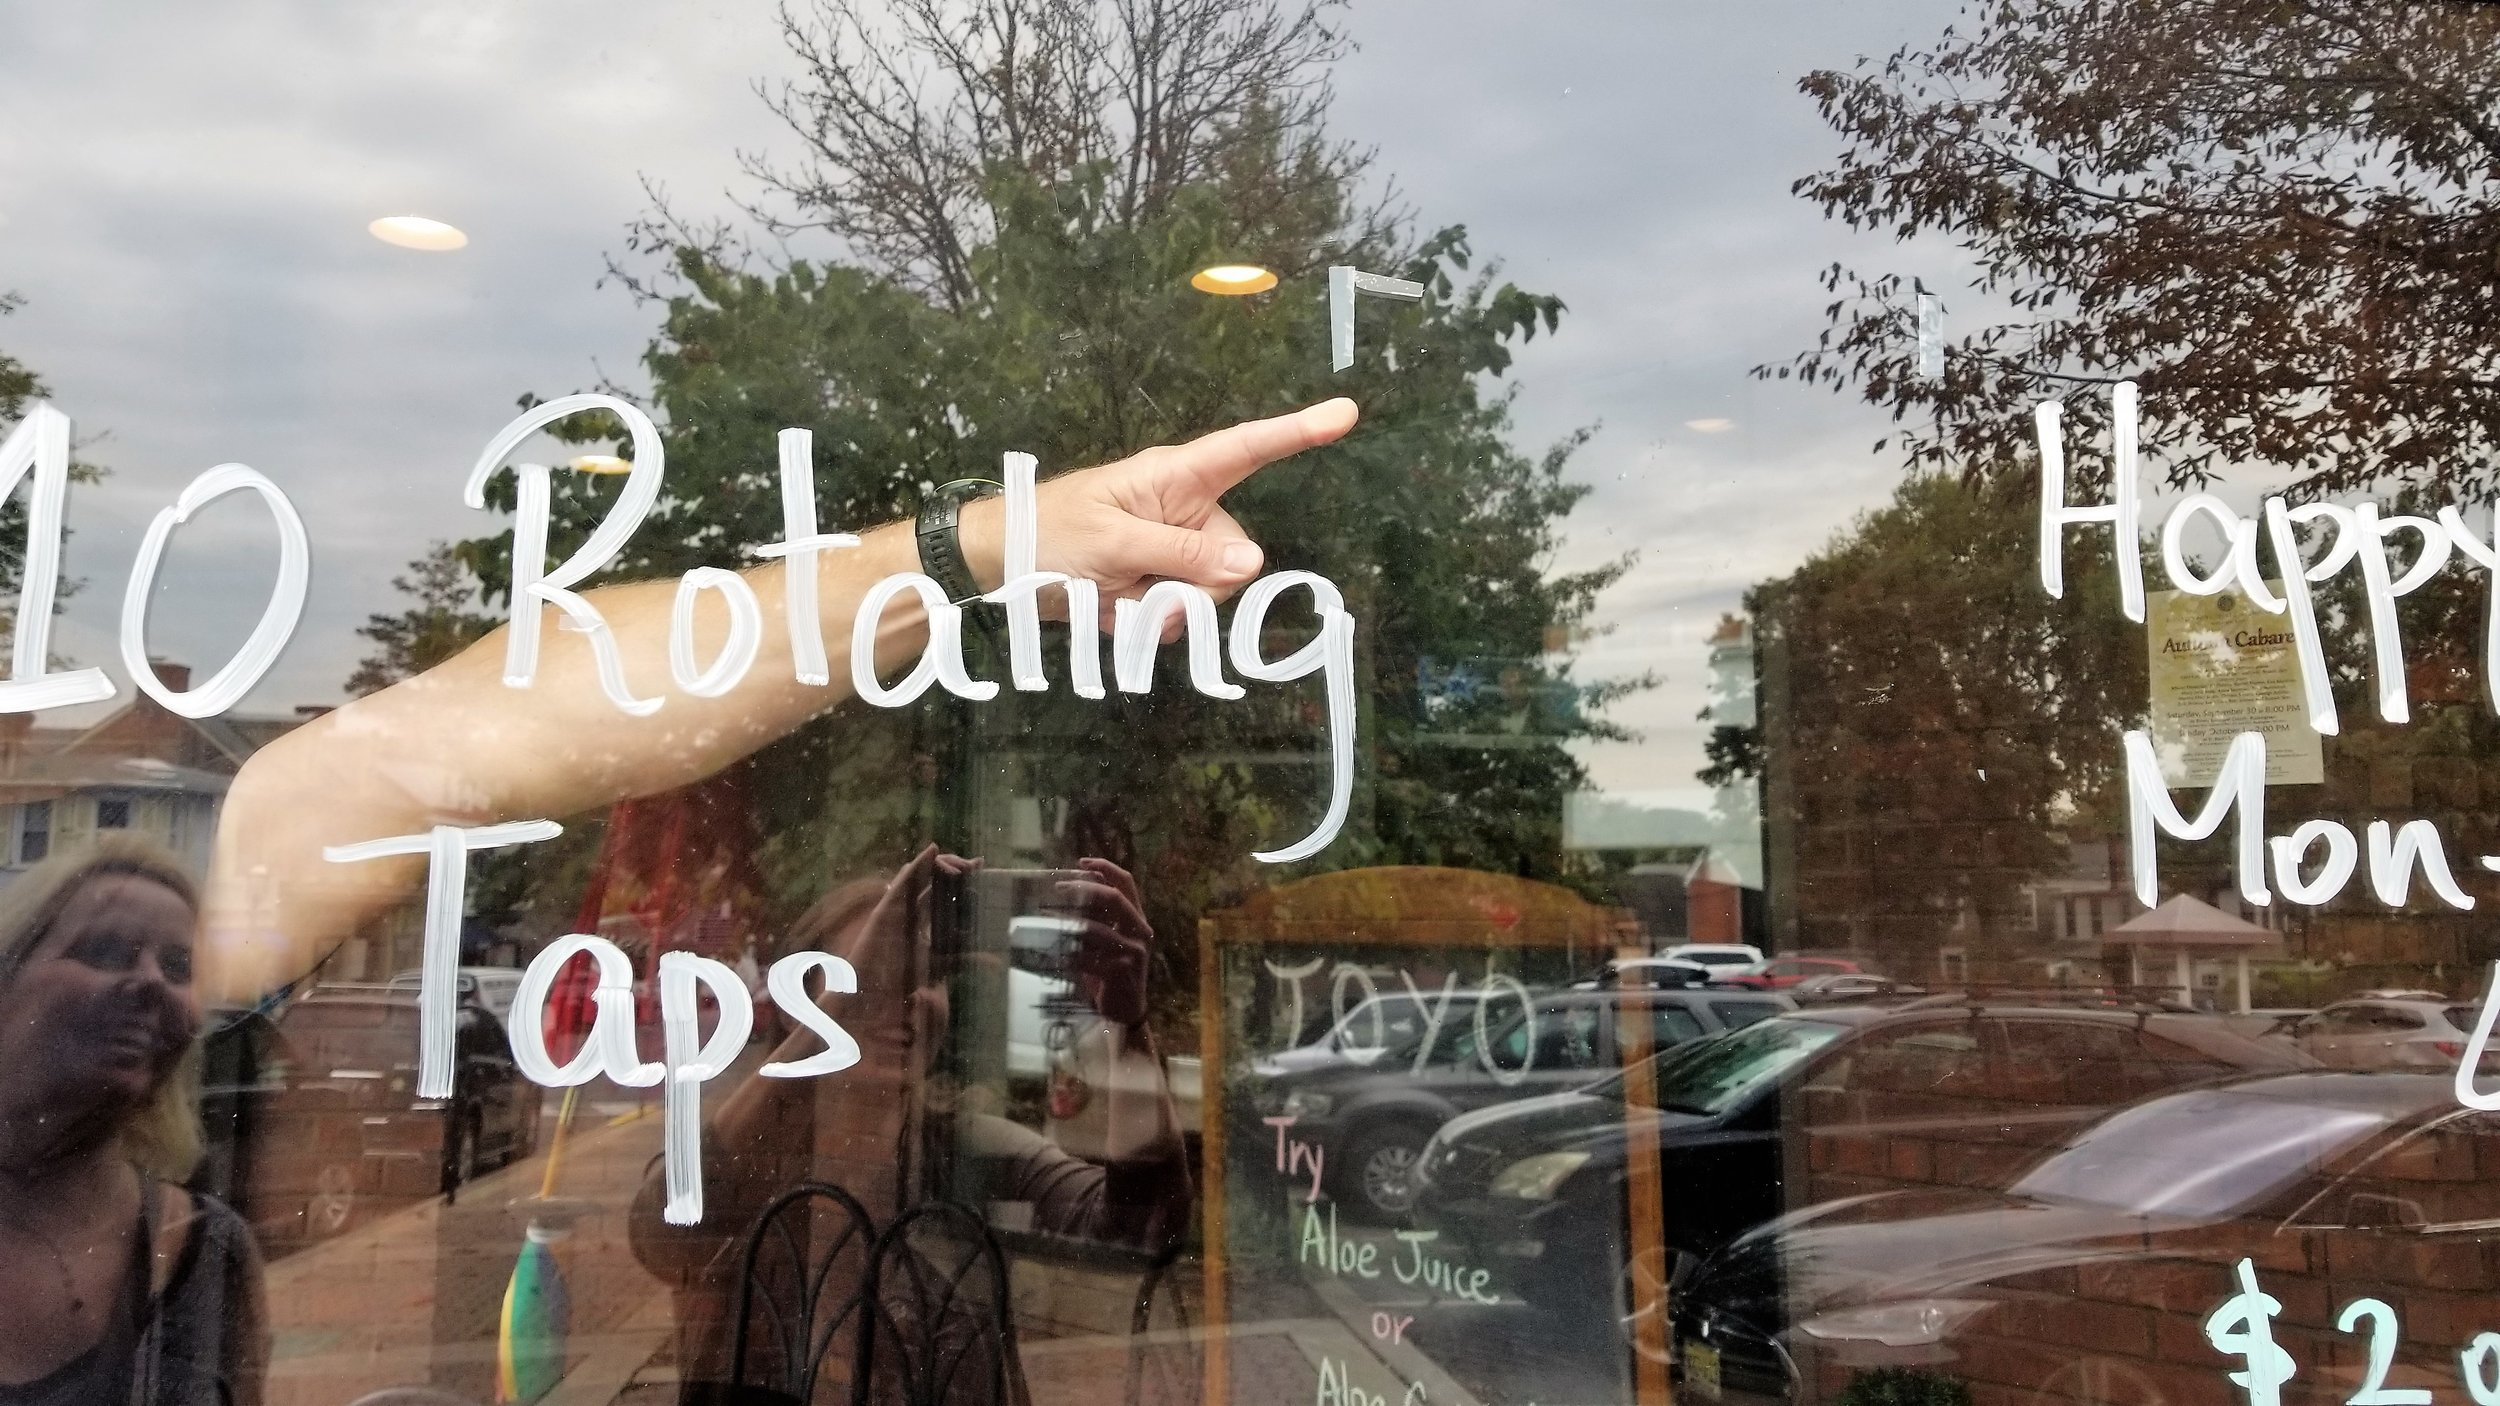 Real life example of scotch tape and handwritten words on a Doylestown storefront.